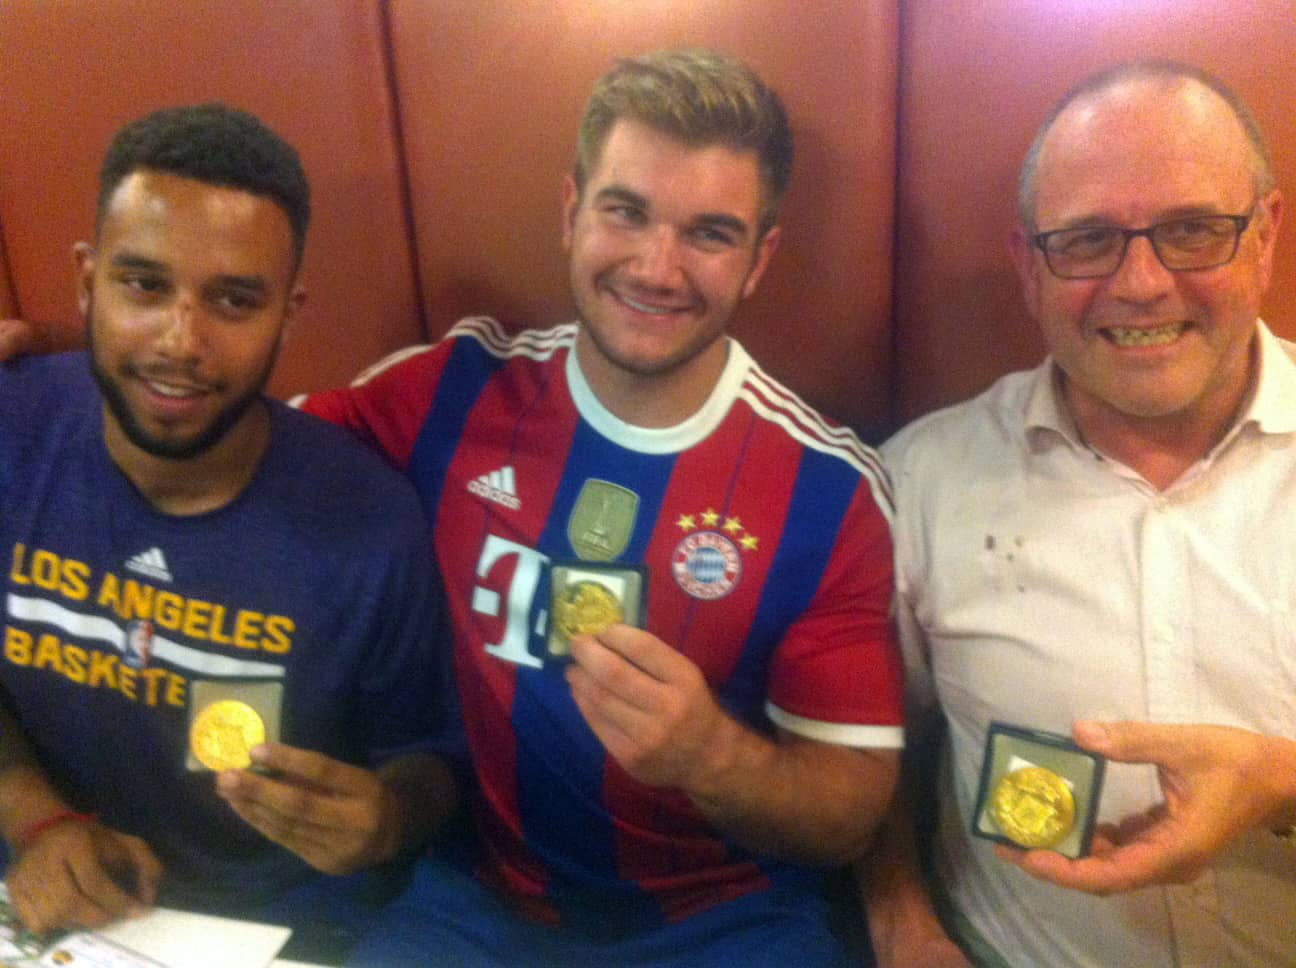 From left, Anthony Sadler, from Pittsburg, California, Alek Skarlatos from Roseburg, Oregon, and British national Chris Norman